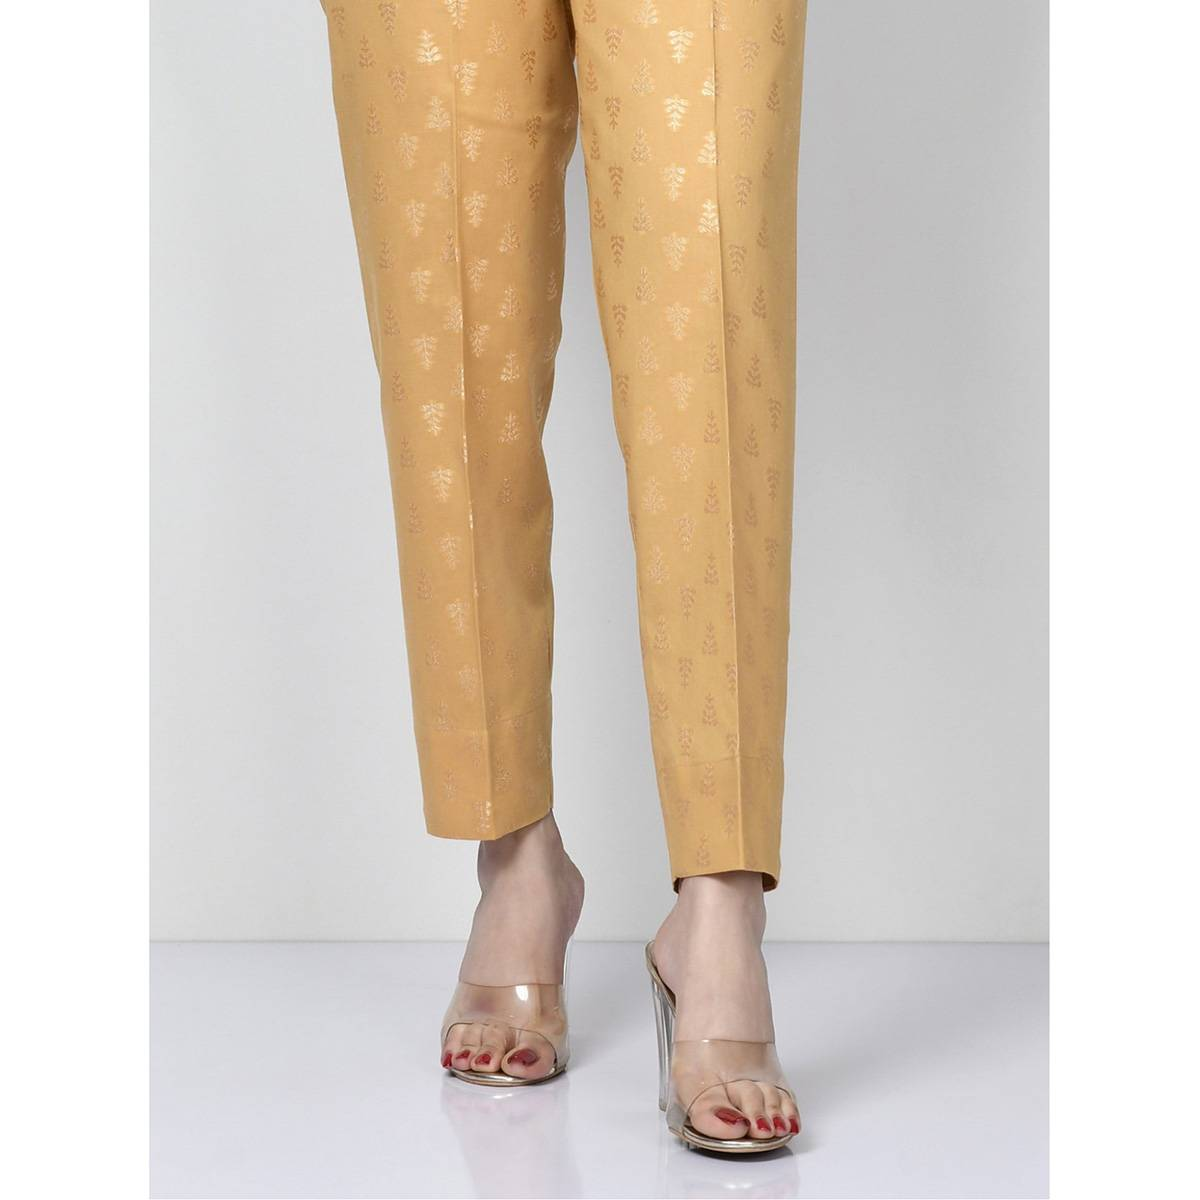 LimeLight Stitched Beige Jacquard Bootcut Pants   For Women P3654-MDN-BGE